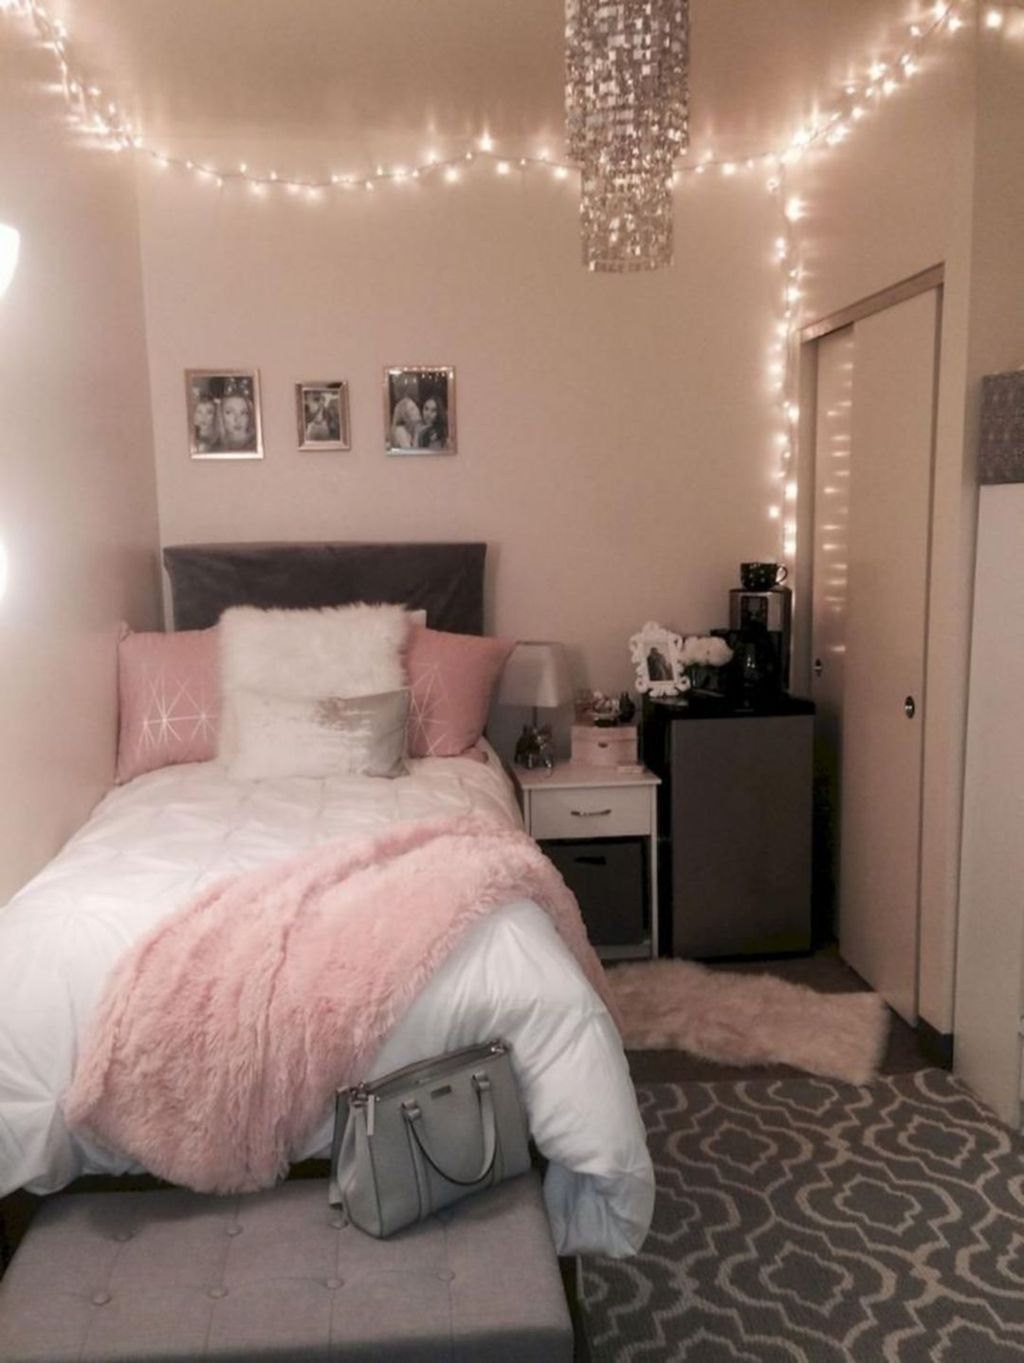 The Best DIY Bedroom Decor Ideas You Have To Try 10